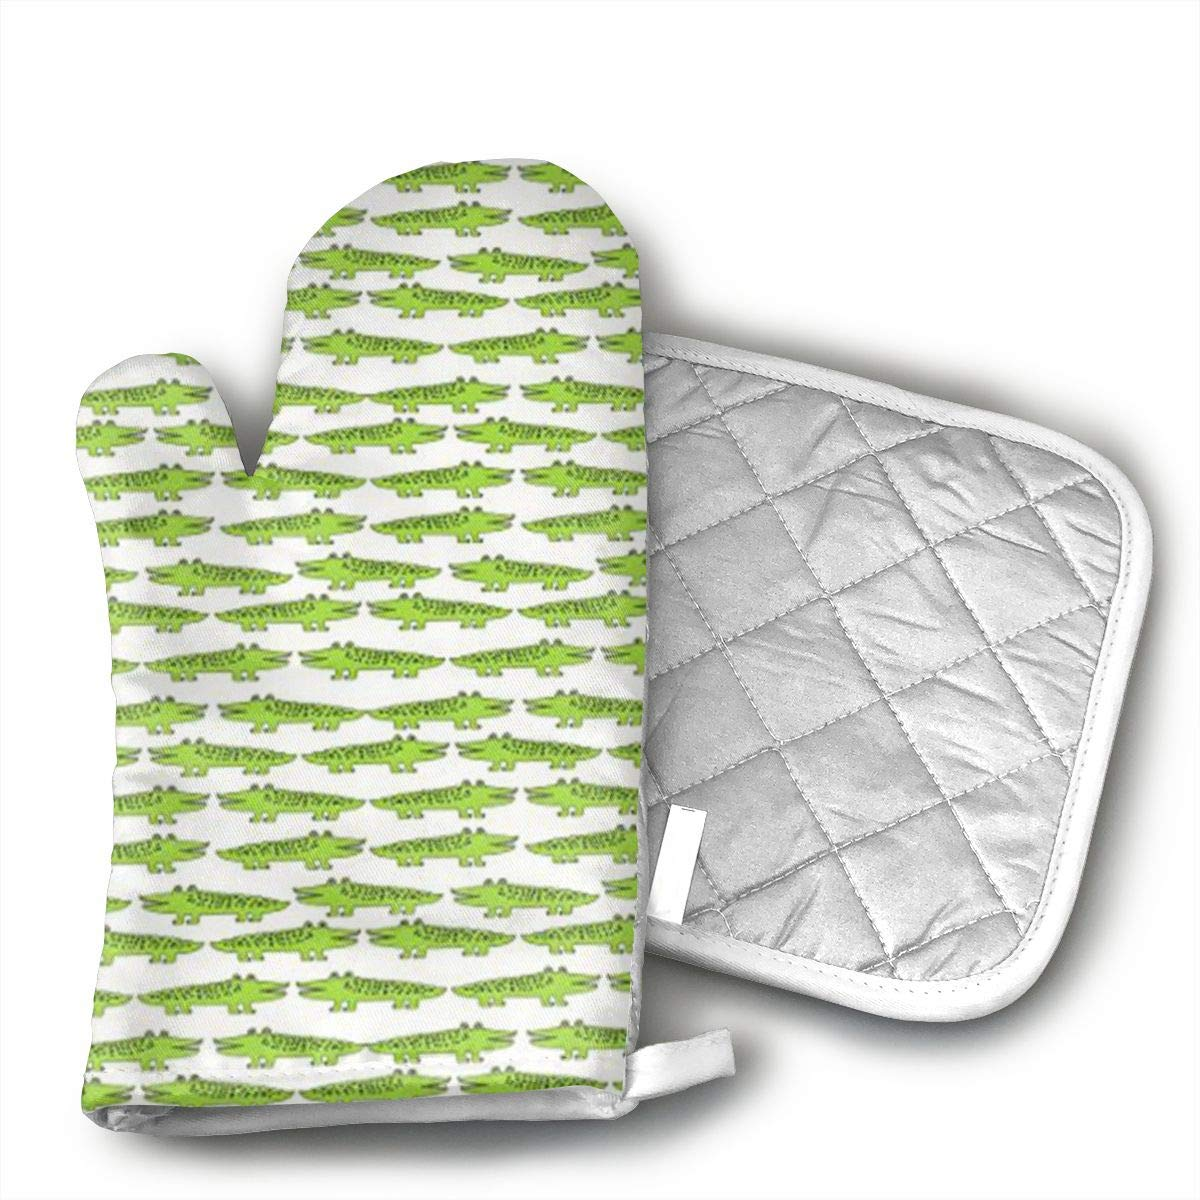 Teuwia Lime Green Mini Alligator Oven Mitts and Pot Holders Baking Oven Gloves Hot Pads Set Heat Resistant for Finger Hand Wrist Protection